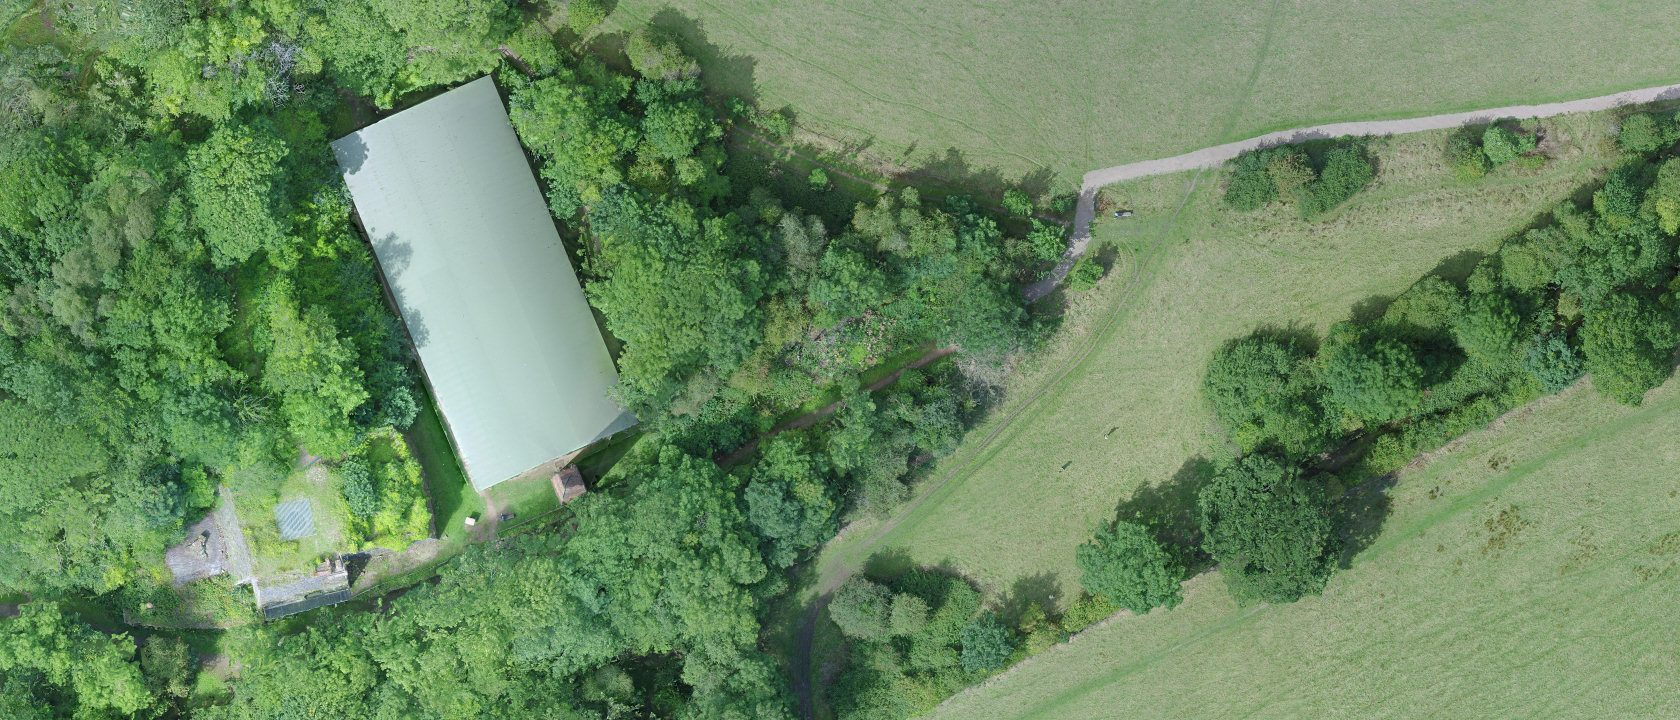 Drone Mapping and Aerial Surveys - Drone Rangers Aerial